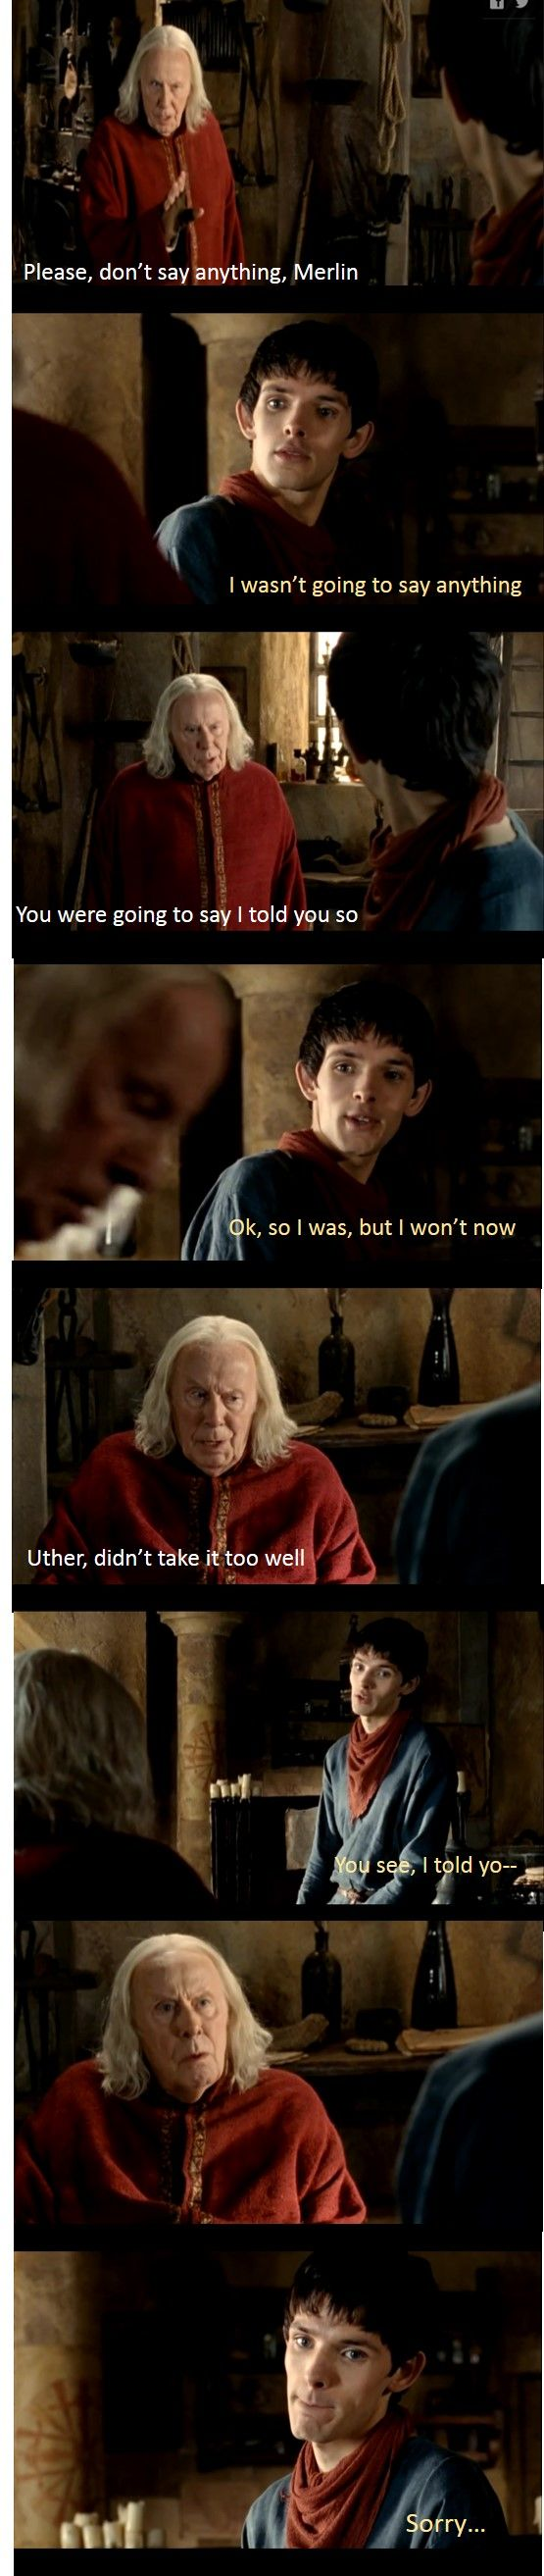 "Merlin does this a lot where he says he wasn't going to say ""I told you so"" and then he starts saying and he says sorry and makes that face XD"